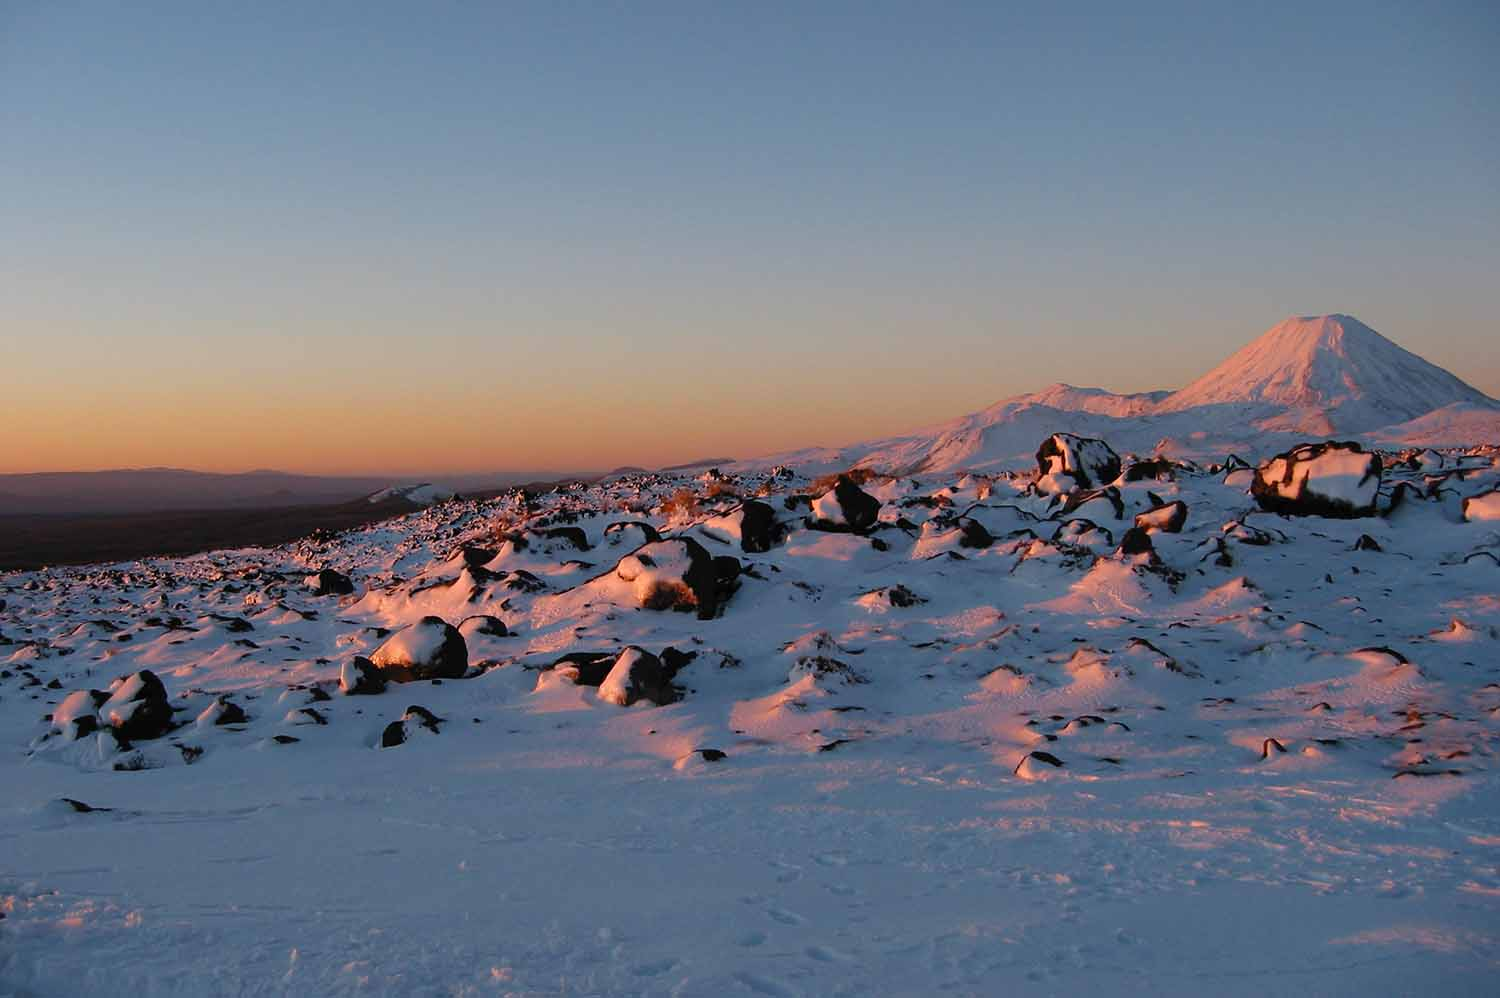 Mt Ngauruhoe on the Tongariro Alpine Crossing during winter with snow all around